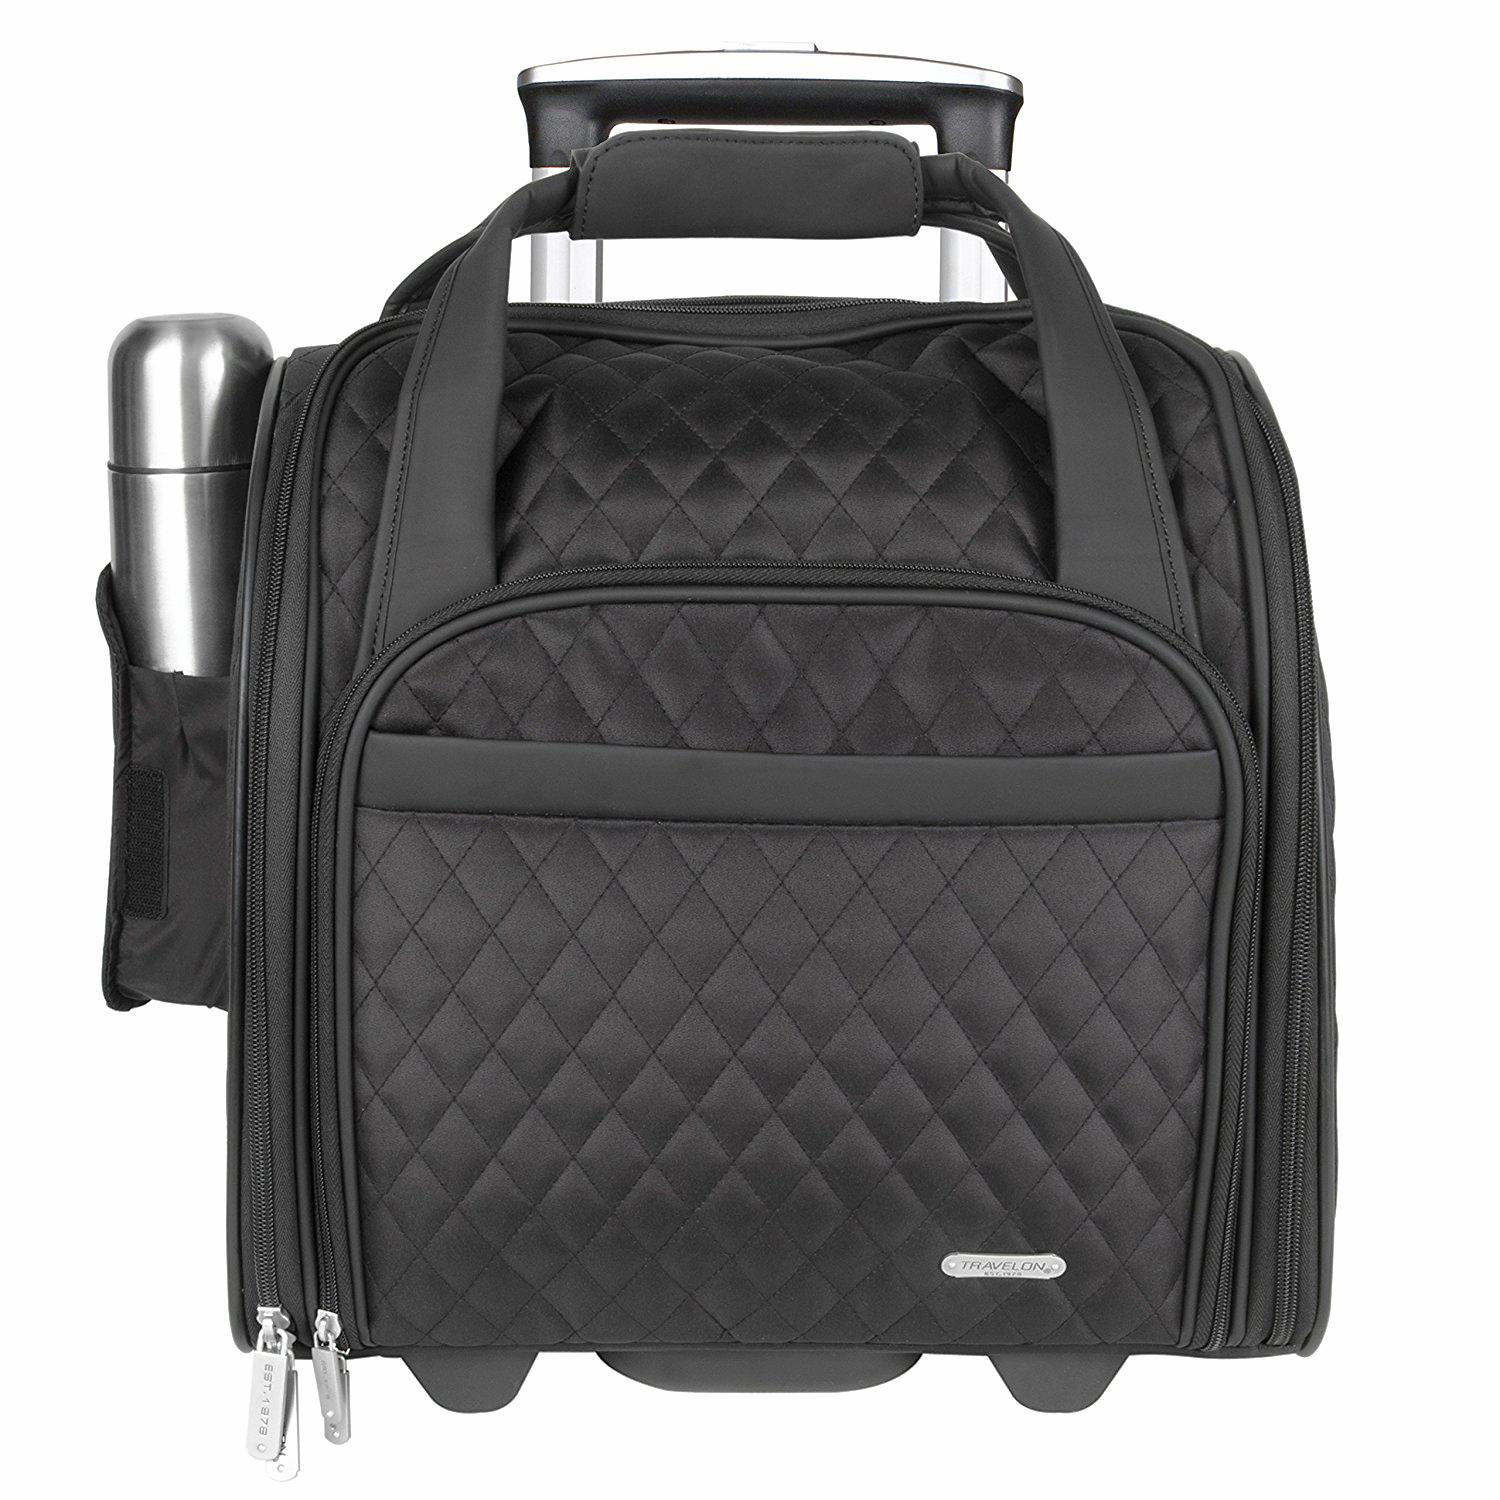 The Best Travel Products on Amazon 0e7c12c599a1a